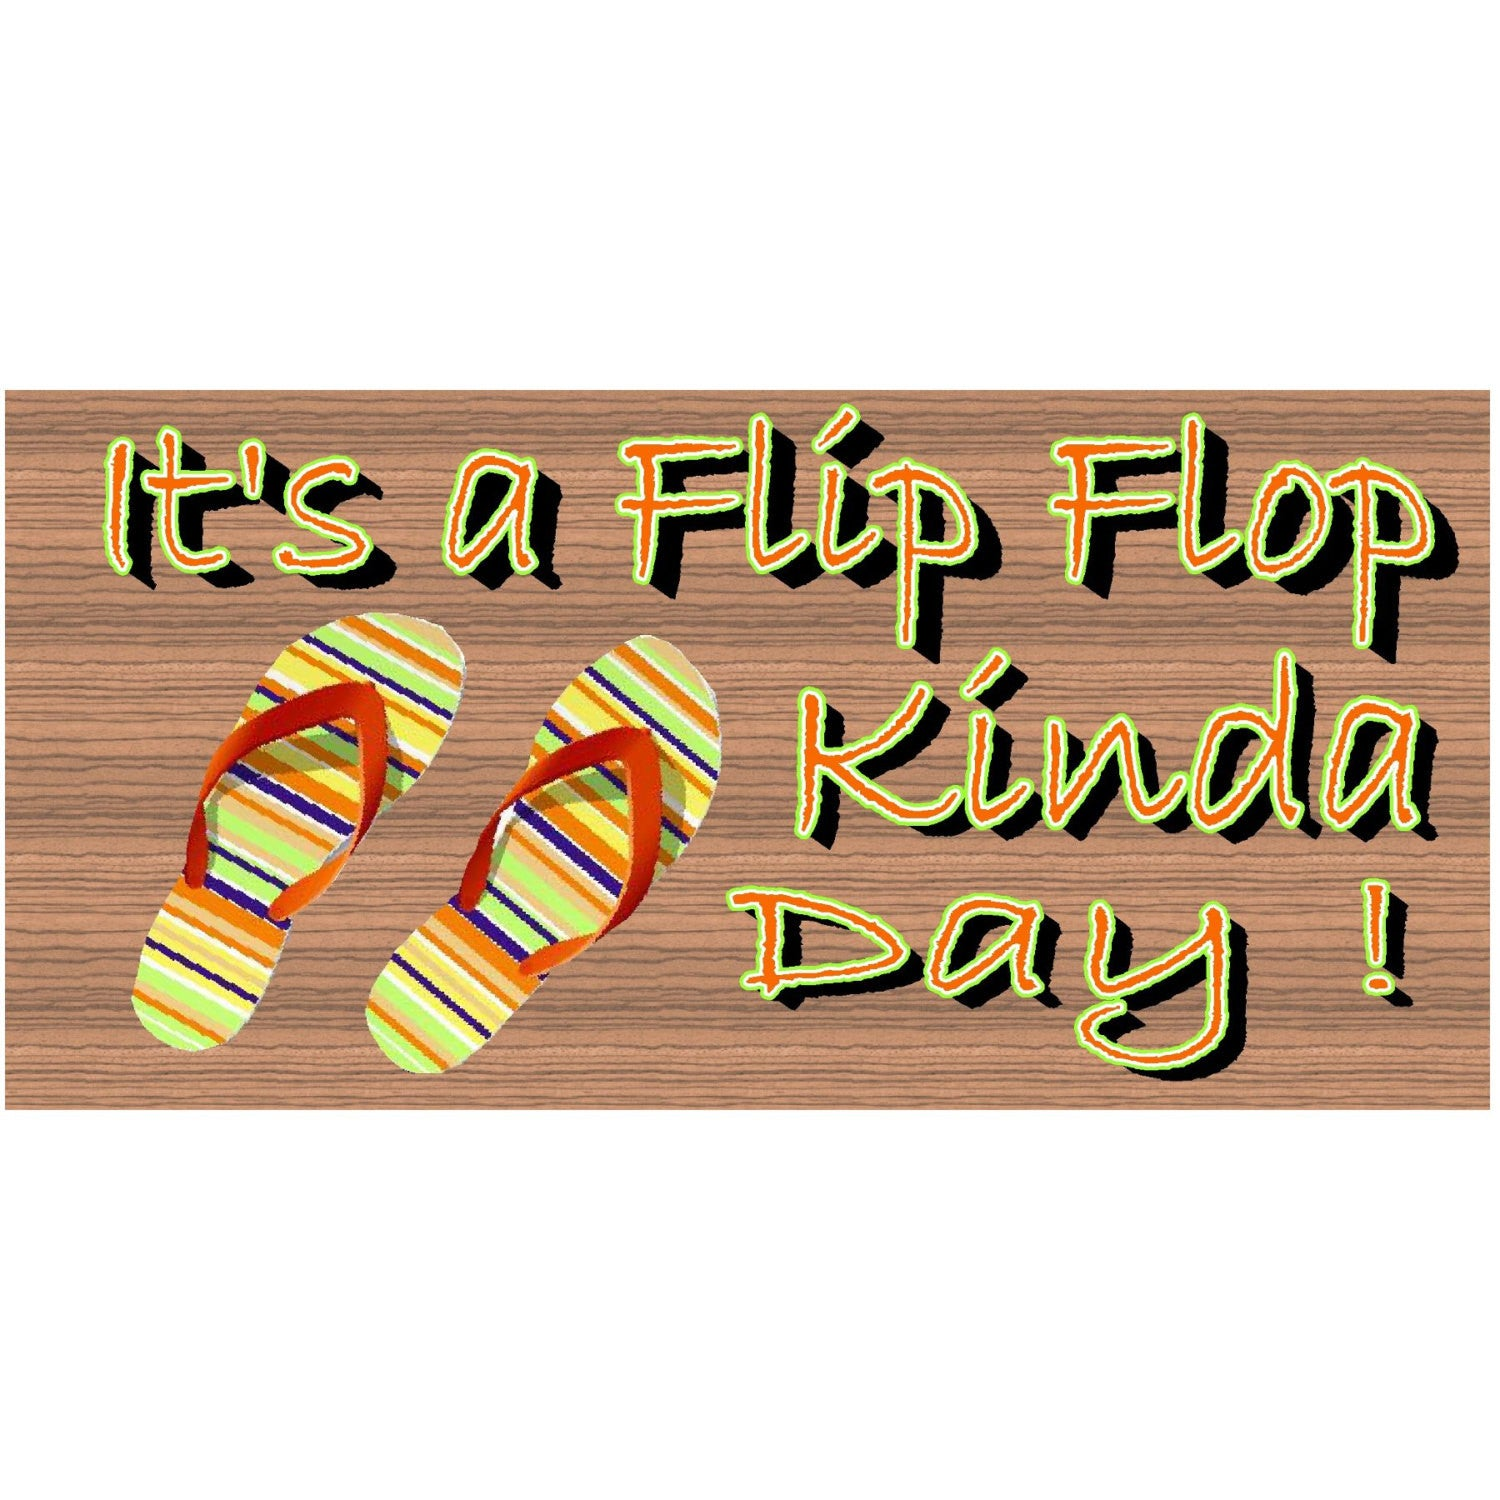 Flip Flop Wood Signs -It's a Flip Flop Kinda Day GS 1029 - Tropical sign